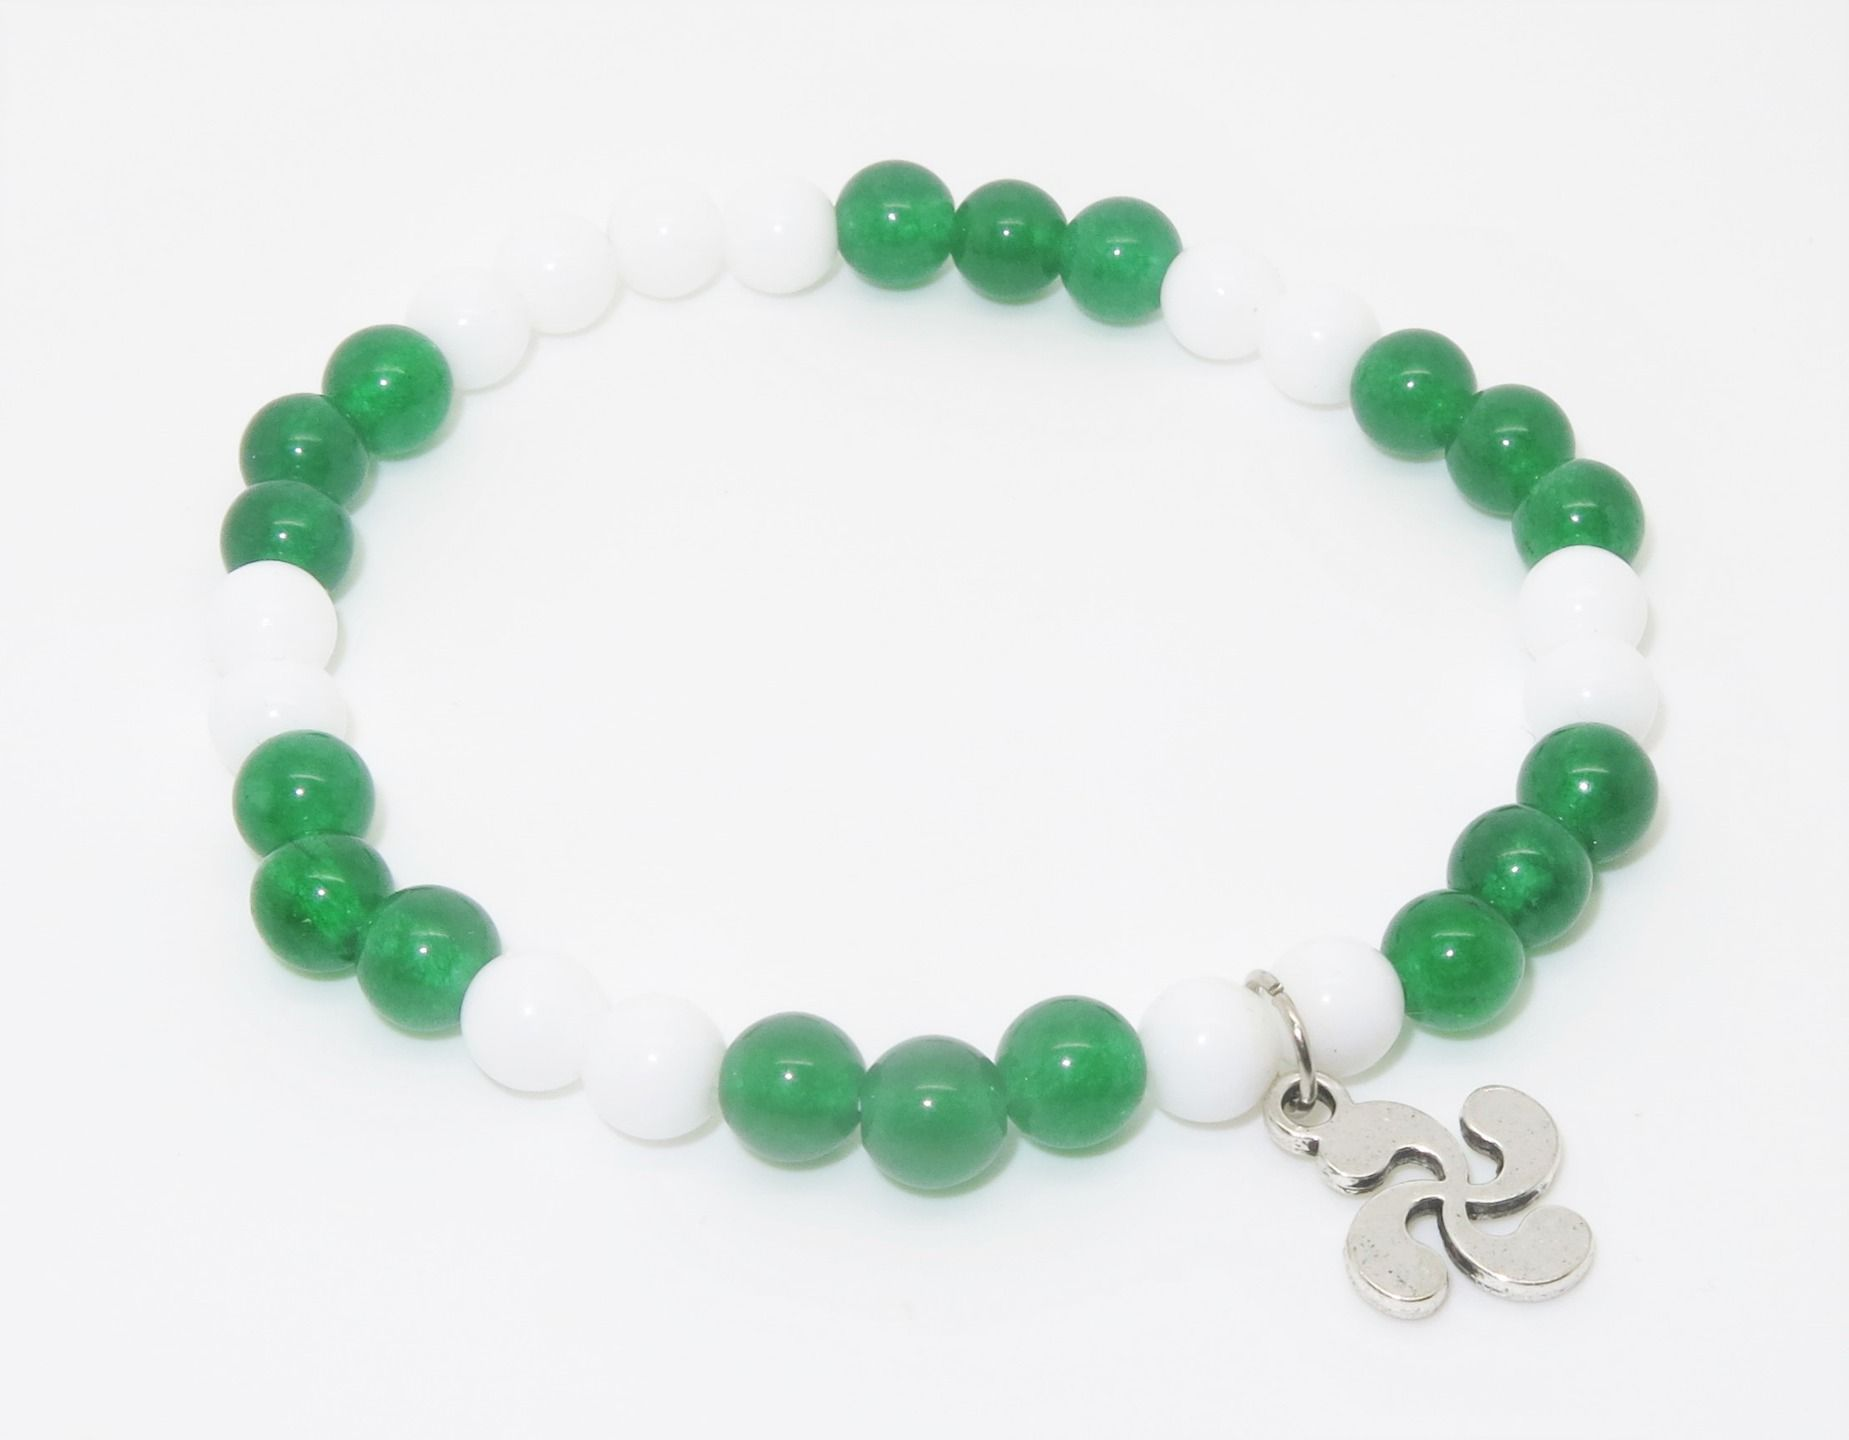 photo crystal carved semiprecious en free images gemstone natural gems stones jewelry fashion jade bracelet birds owl turquoise bead handmade aventurine gift green owls necklace jewellery gemstones accessory beaded